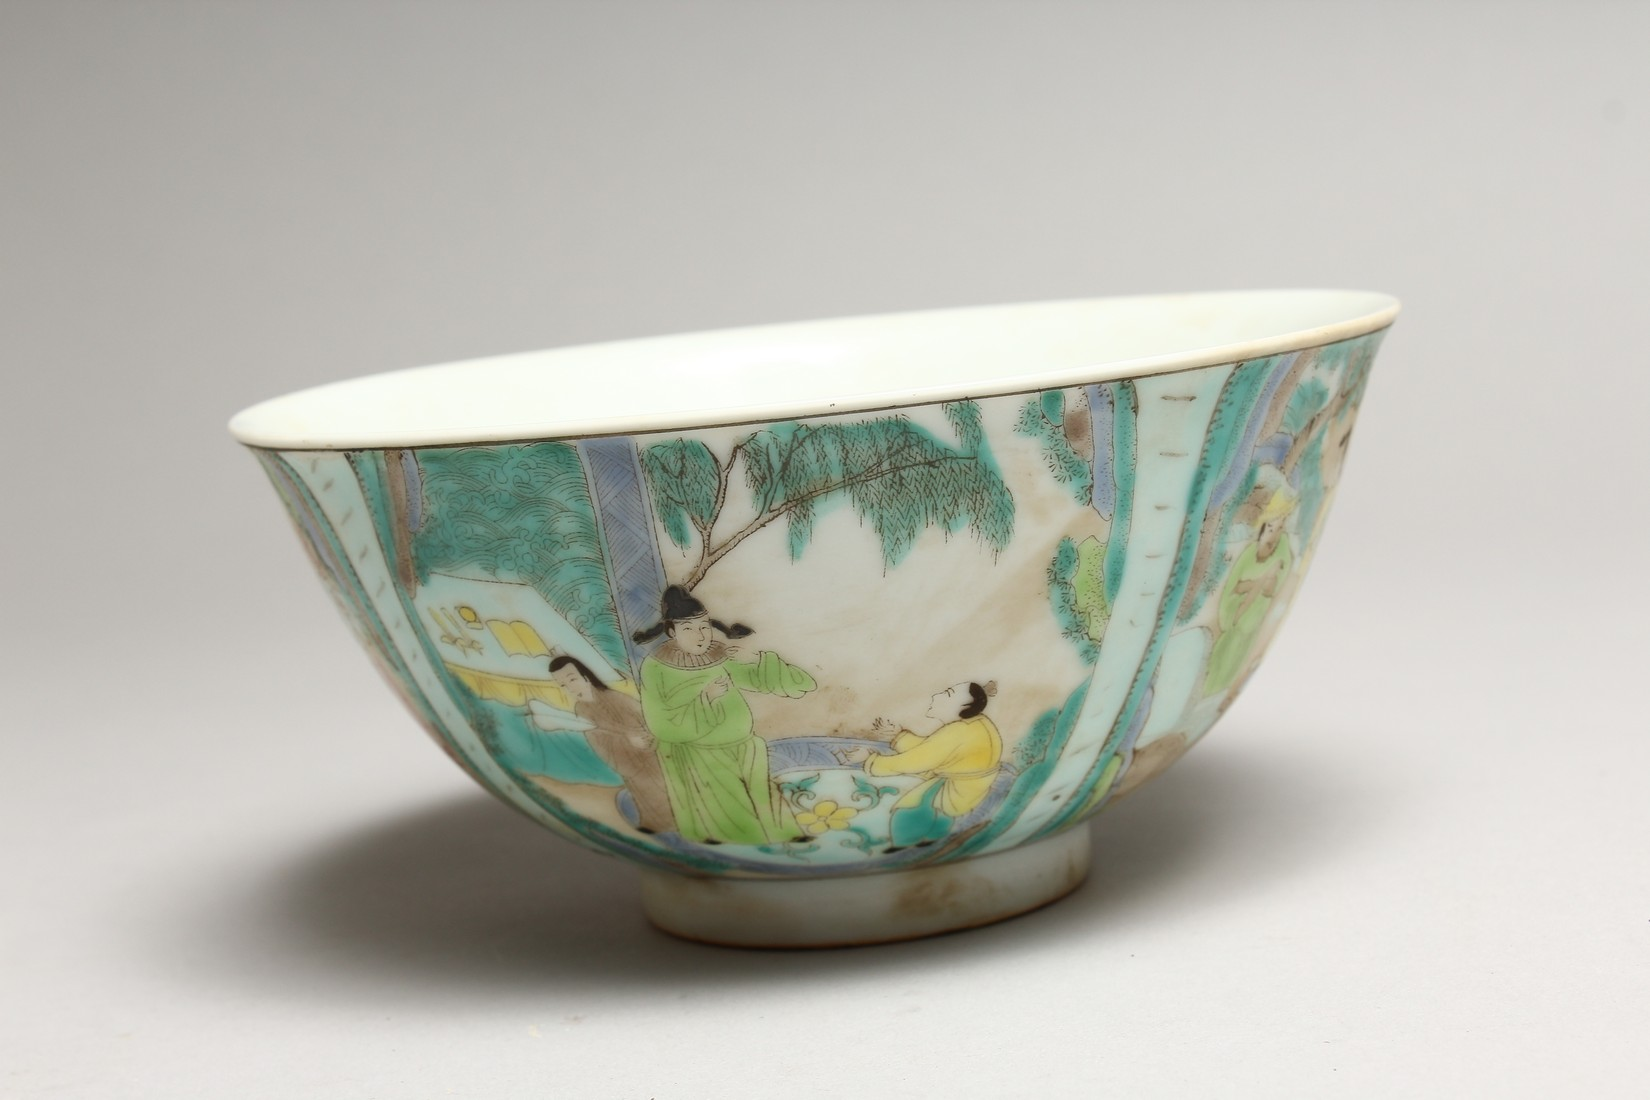 A CHINESE FAMILLE VERTE PORCELAIN BOWL, painted with figures in a landscape. 6.25ins diameter. - Image 3 of 6